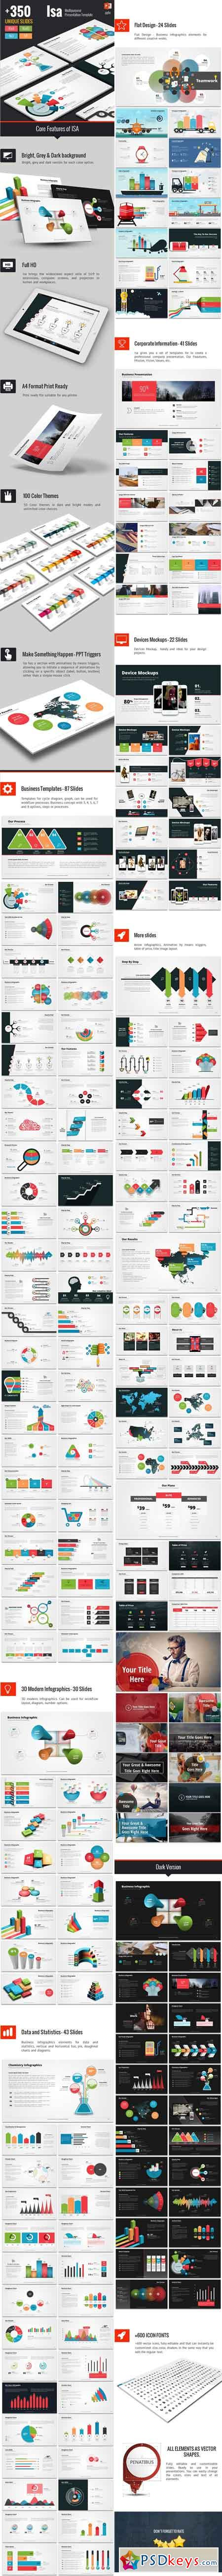 Isa multipurpose powerpoint template 14294670 free download isa multipurpose powerpoint template 14294670 toneelgroepblik Images